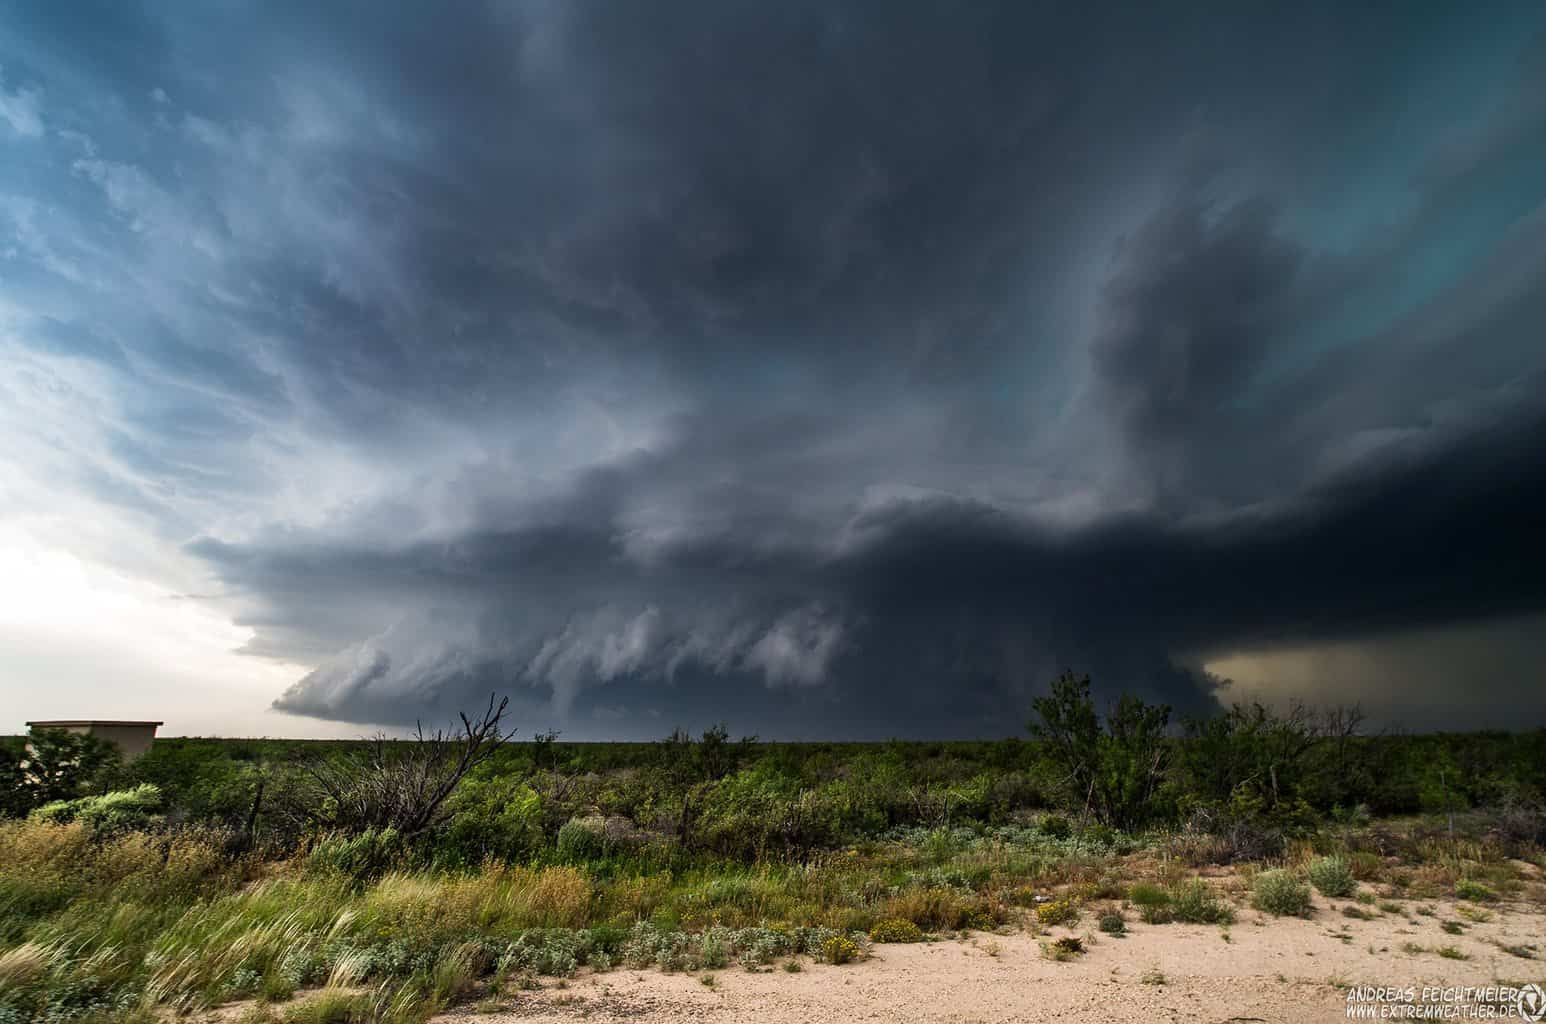 May 18th 2015 Massive and slow moving HP-Supercell near Fort Stockton, Texas.